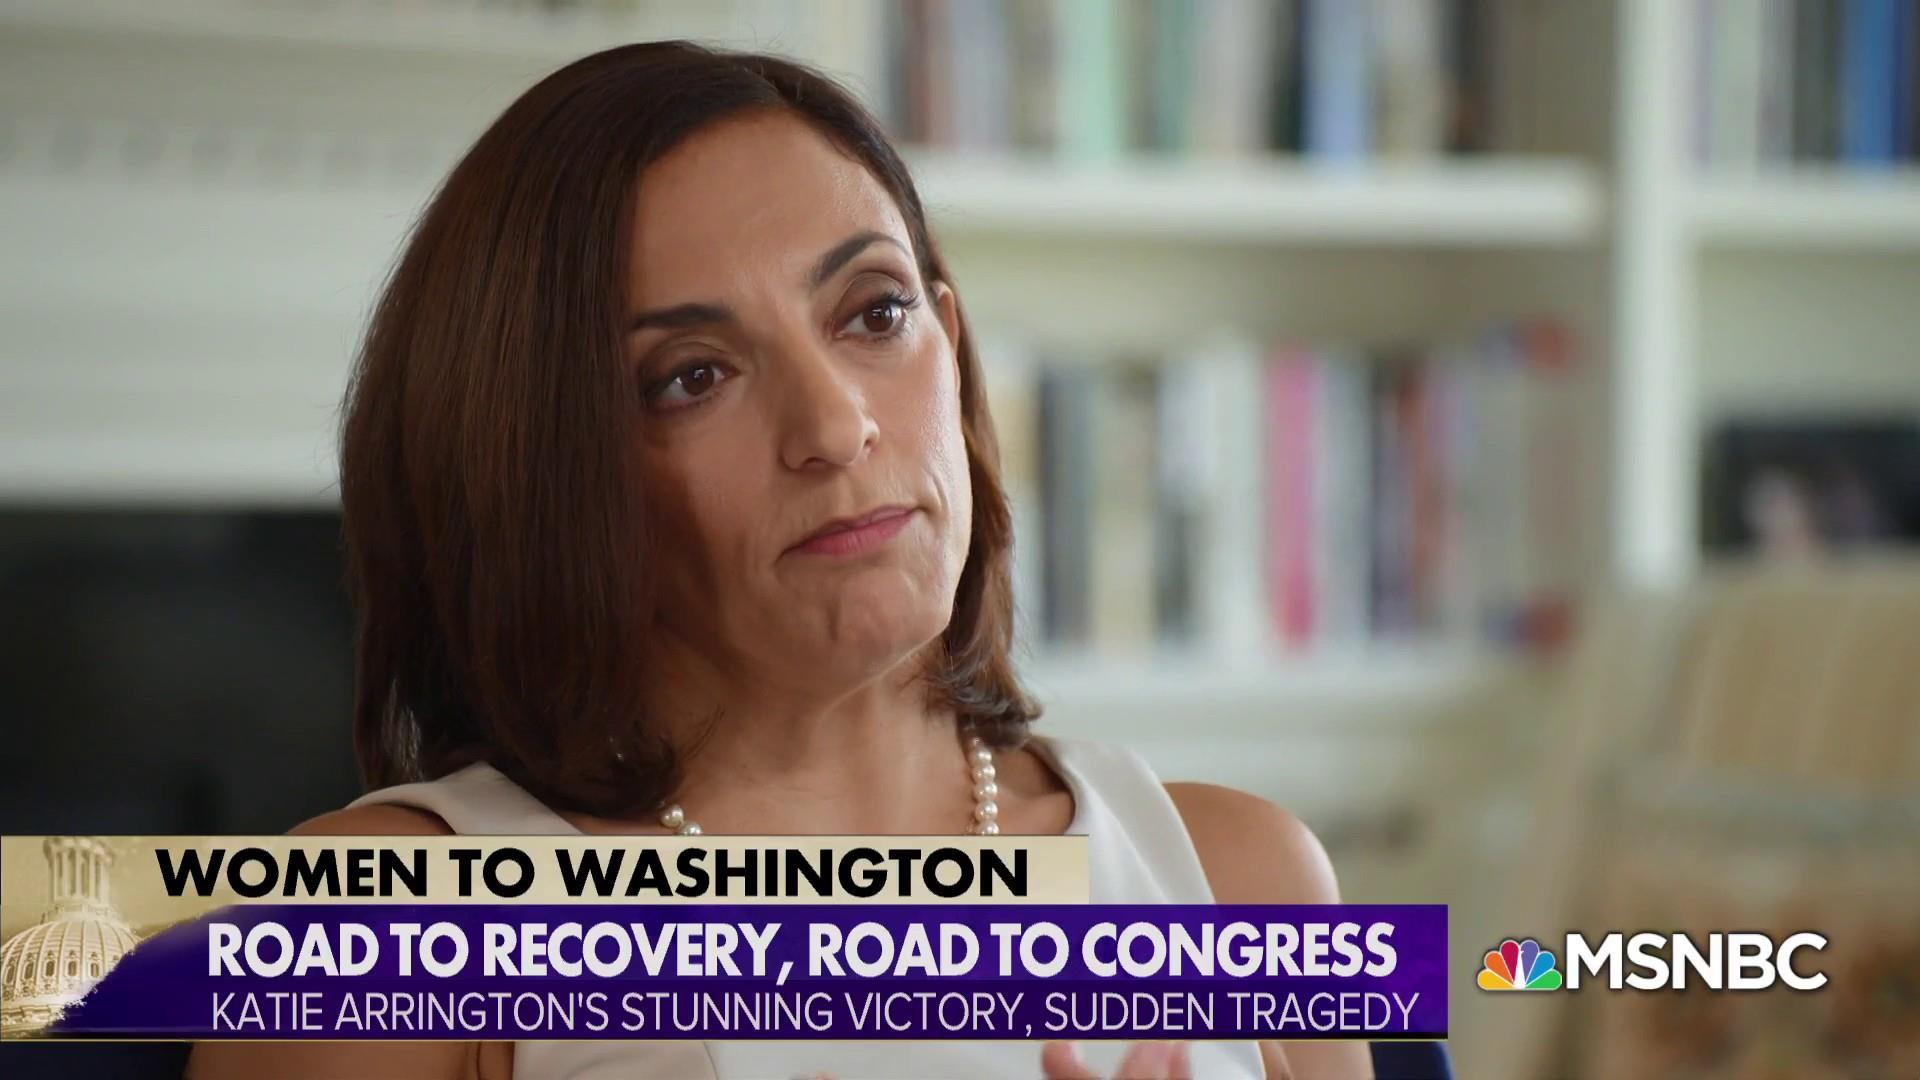 Katie Arrington back on campaign trail after tragic car accident